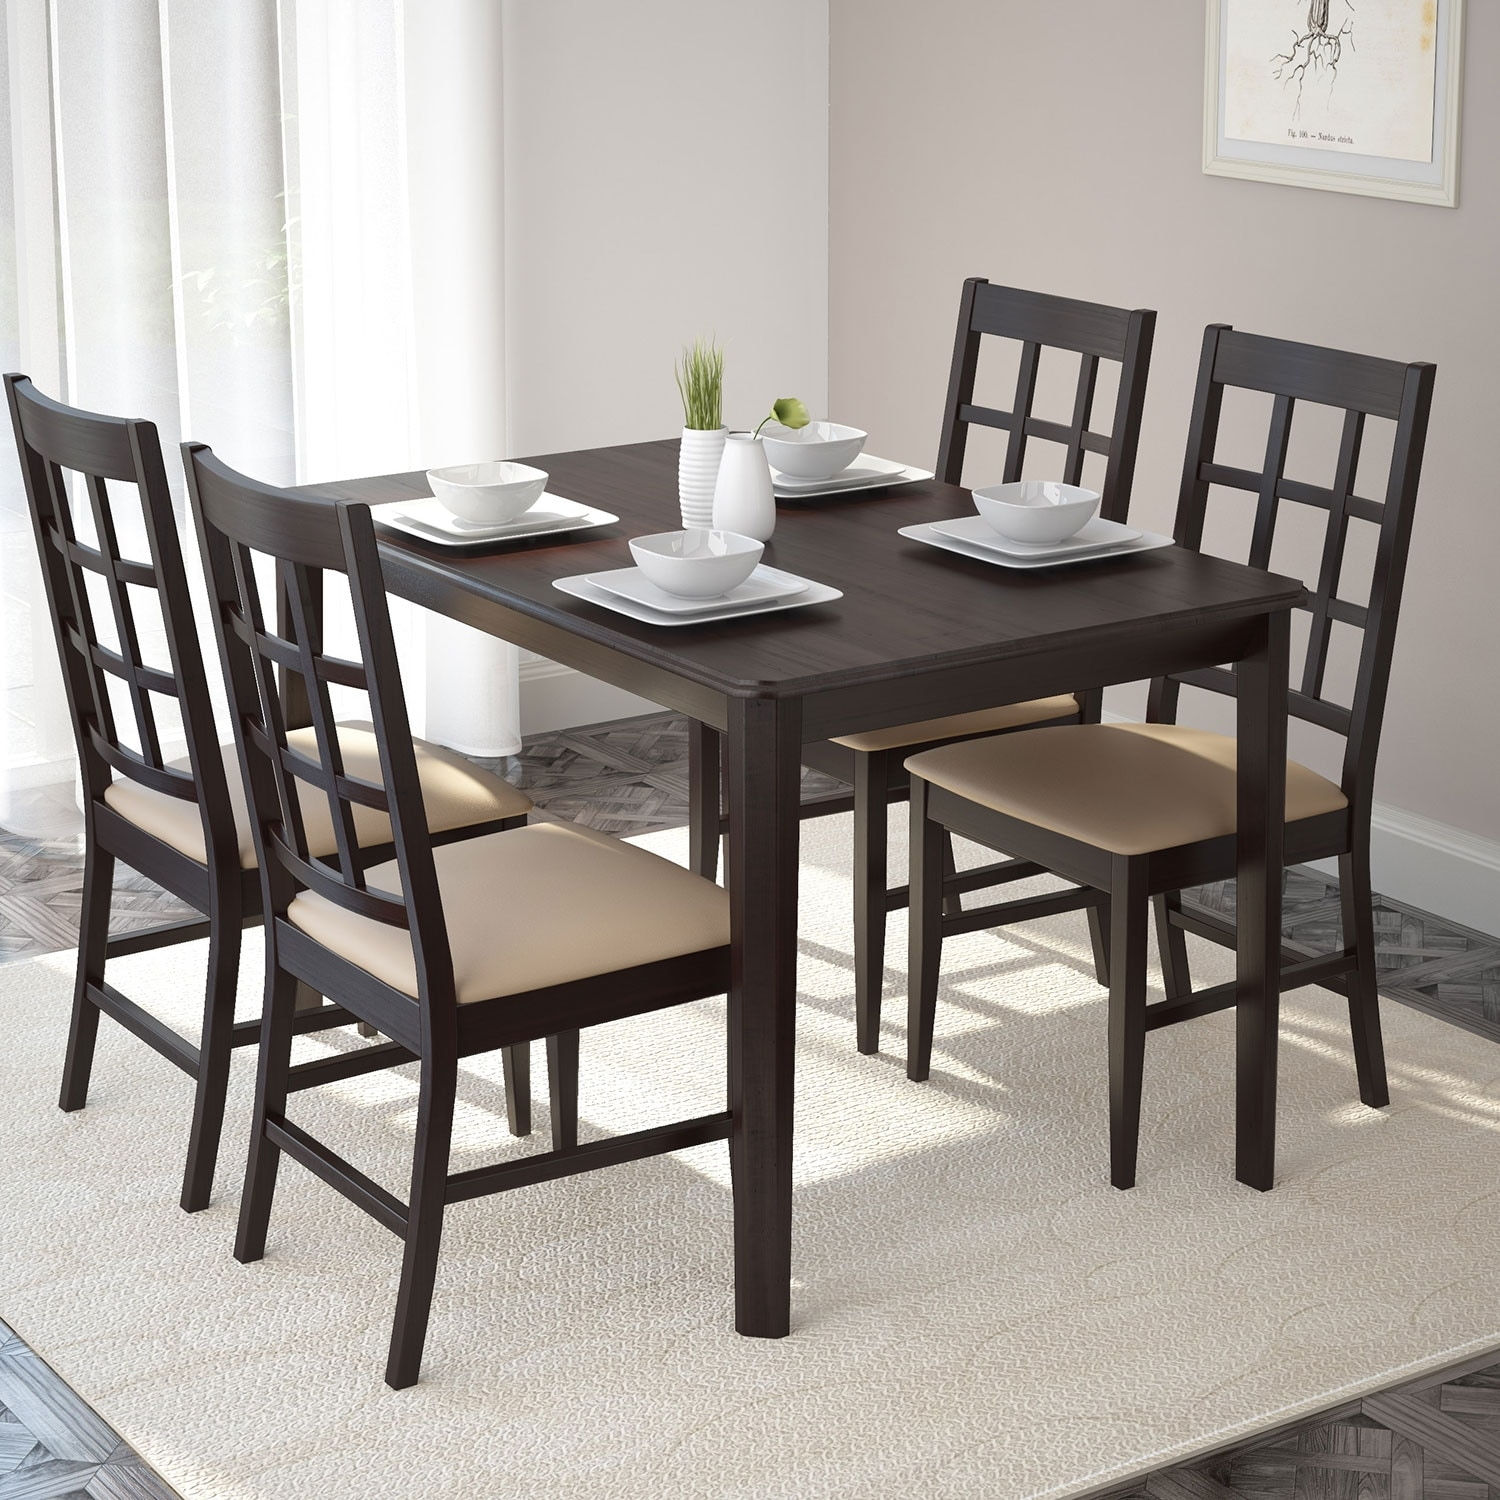 "Atwood 5-Piece 47.3"" Dining Package with Grey Chairs"